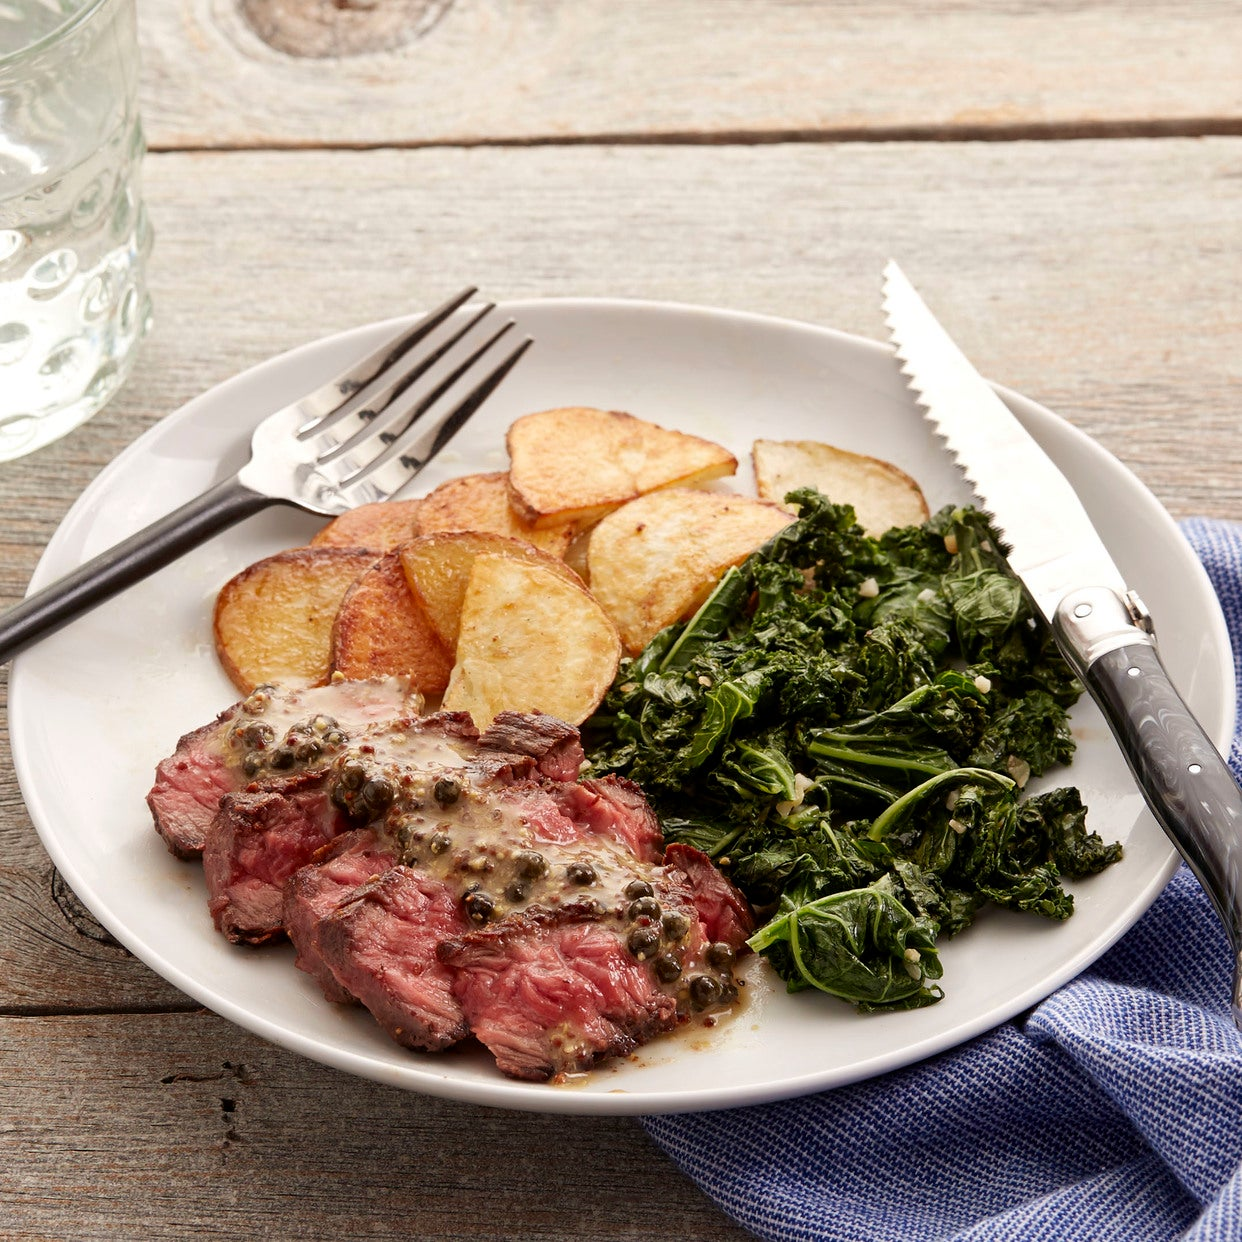 Steak & Green Peppercorn Sauce with Kale & Roasted Potato